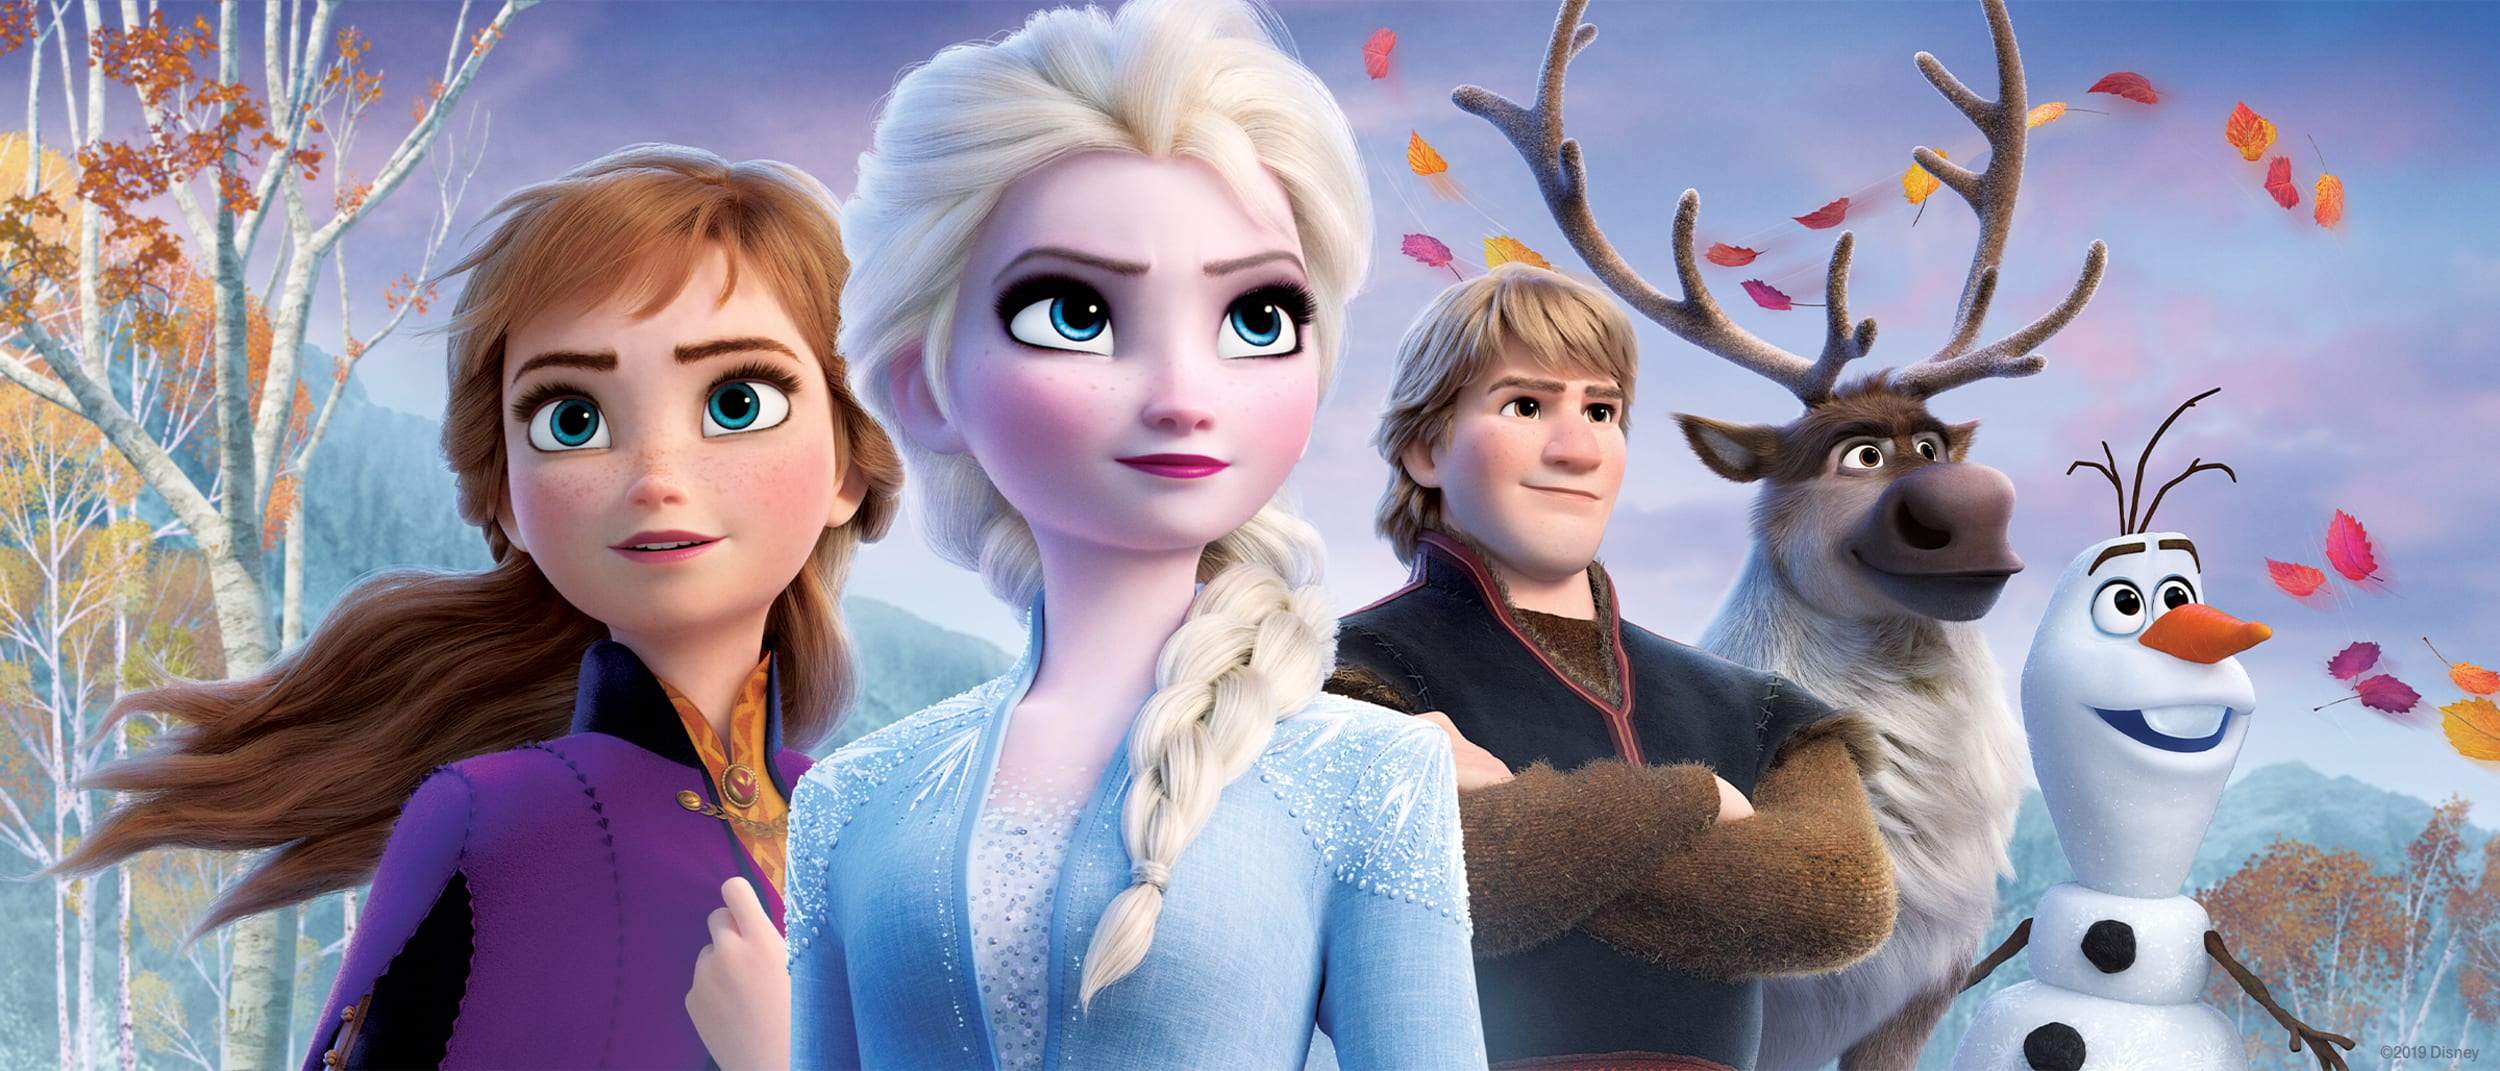 Experience the magic of Disney's Frozen 2